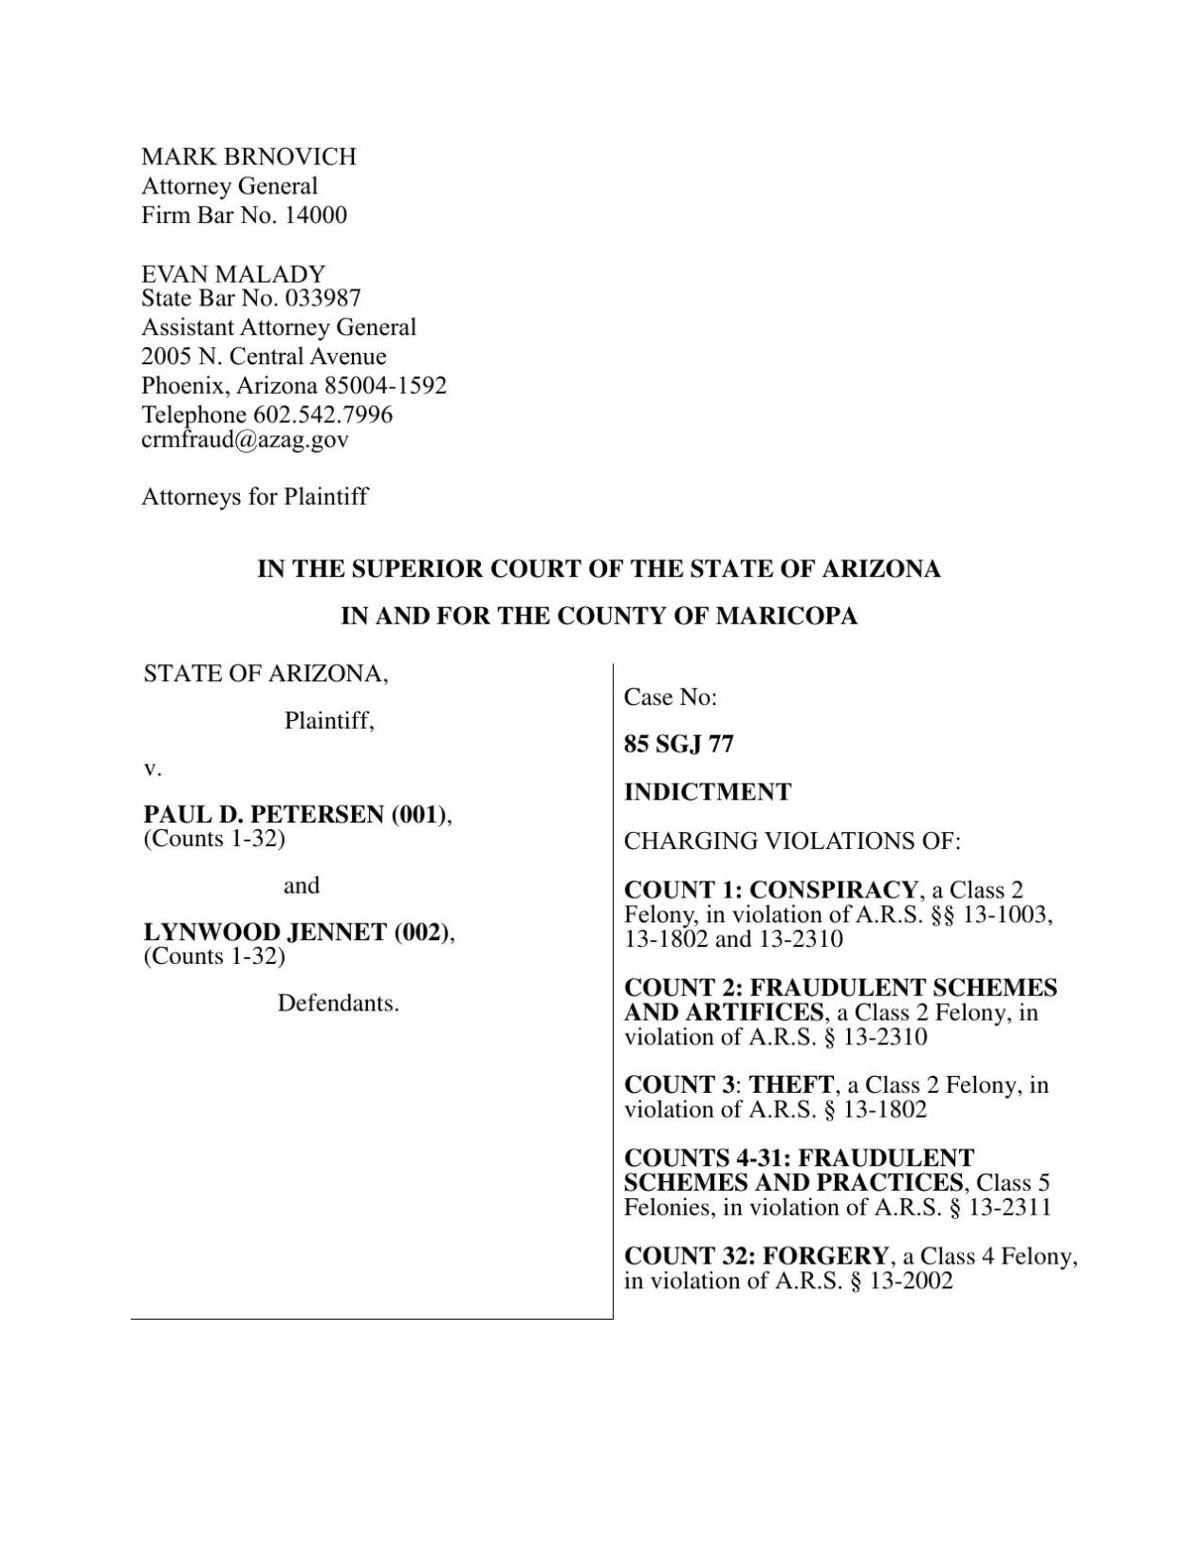 Indictment for Petersen and Jennet